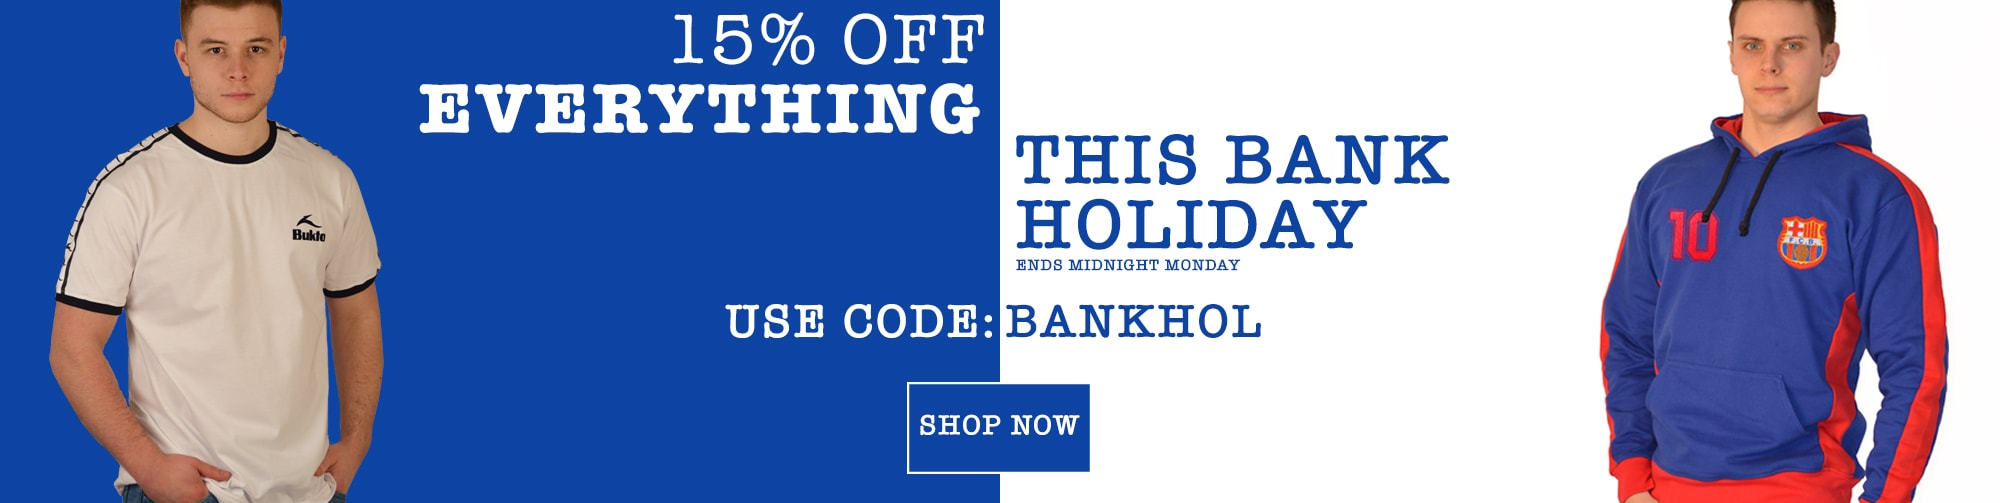 Toffs: Bank Holiday promotion 15% off everything